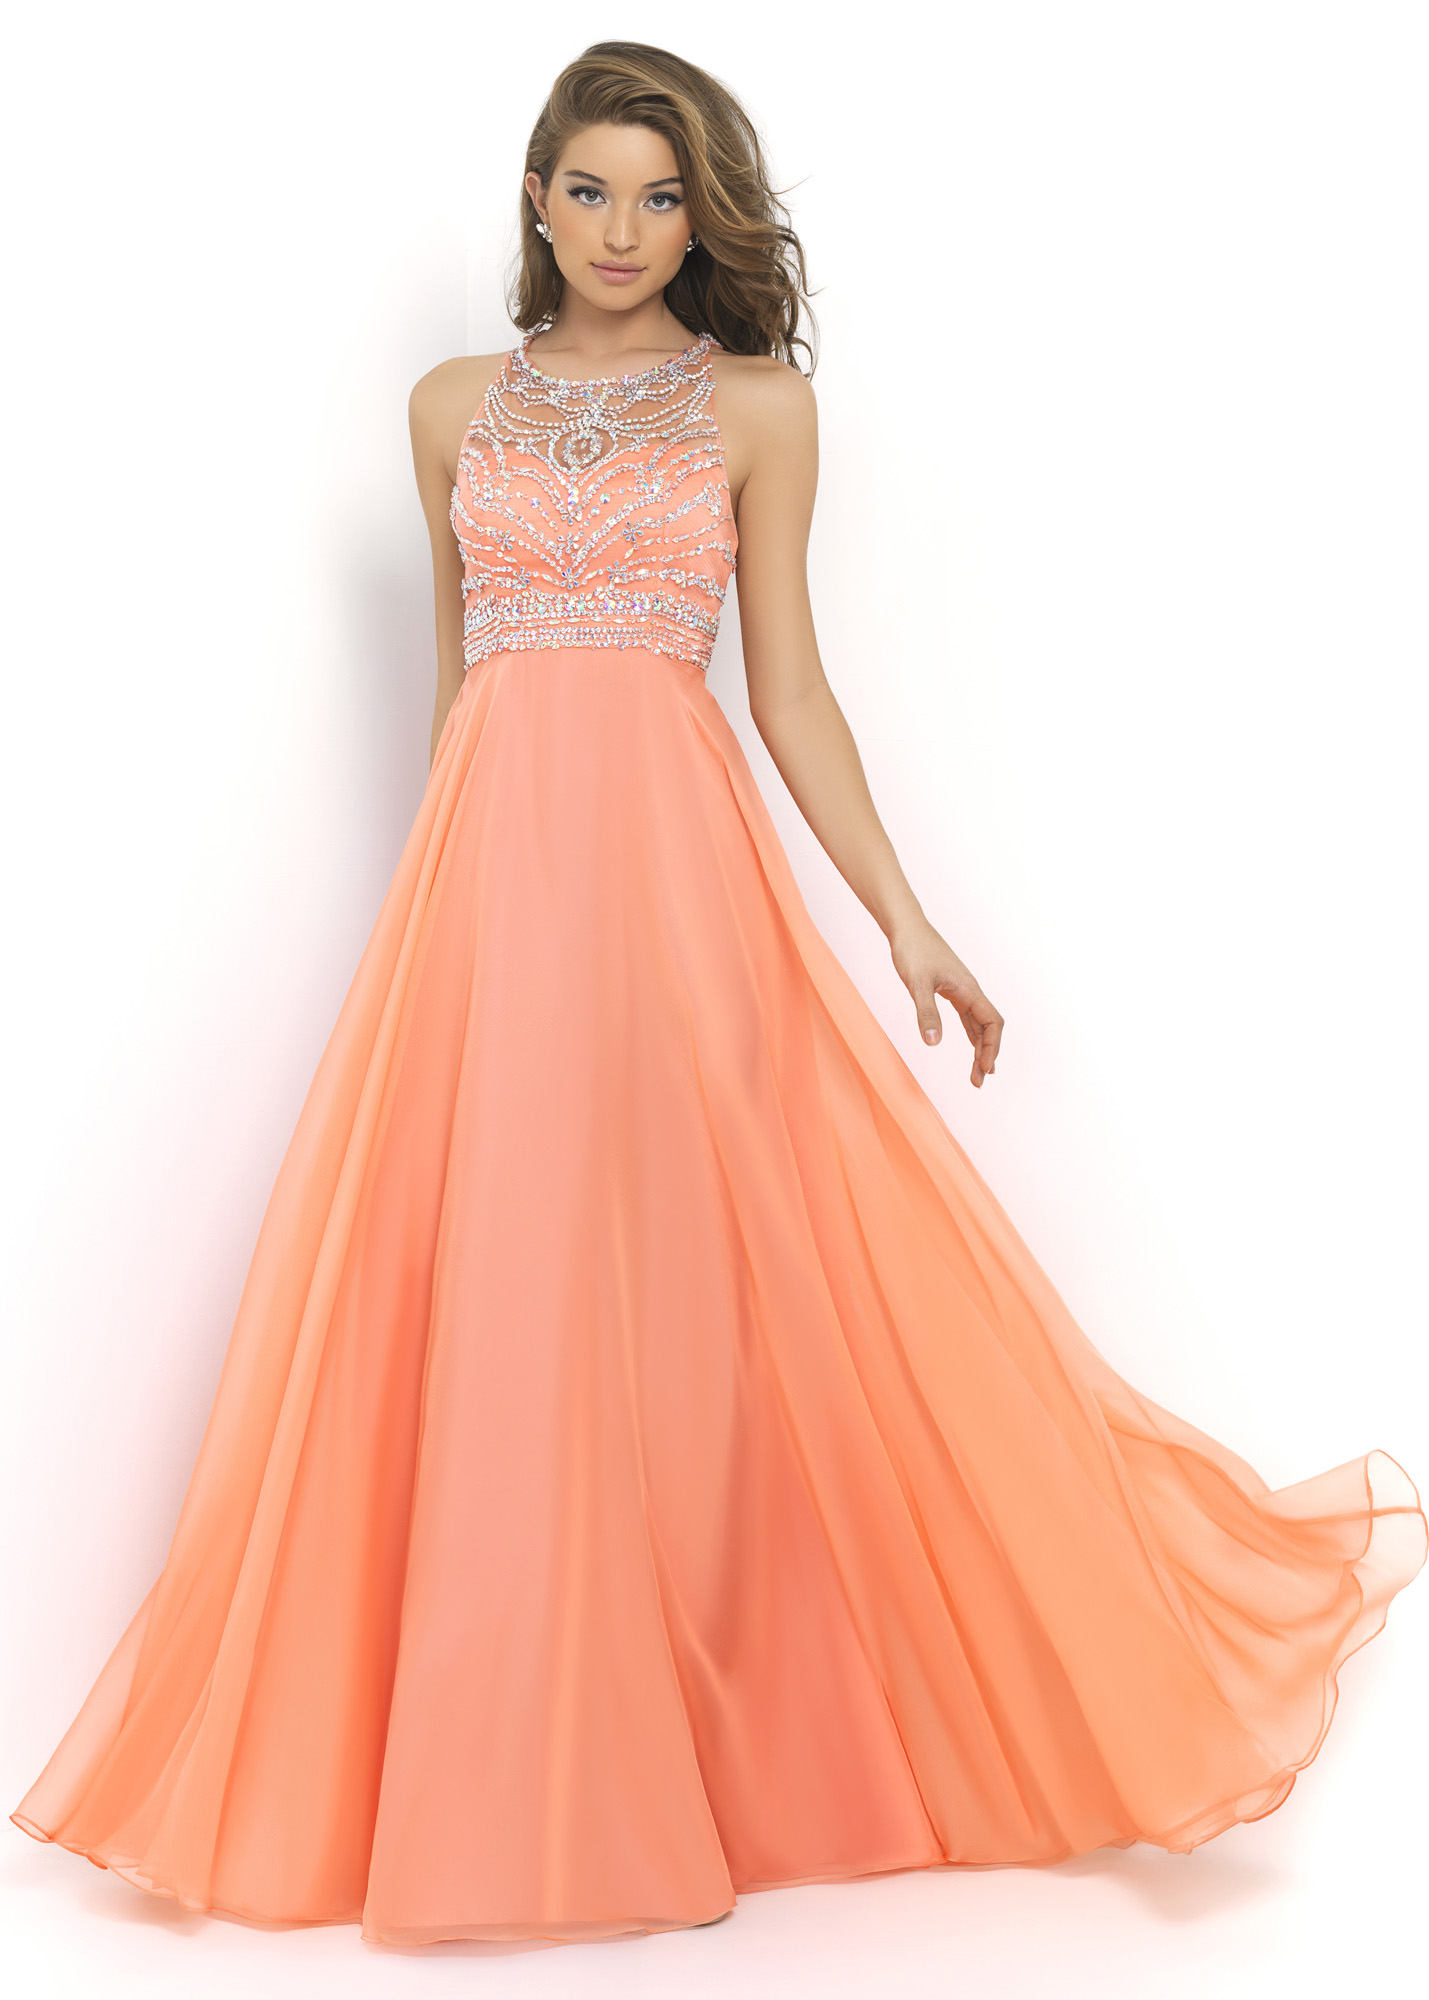 Ulass Chiffon Skirt Orange Ball Gown 2015 REINS Bandage Unbacked ...